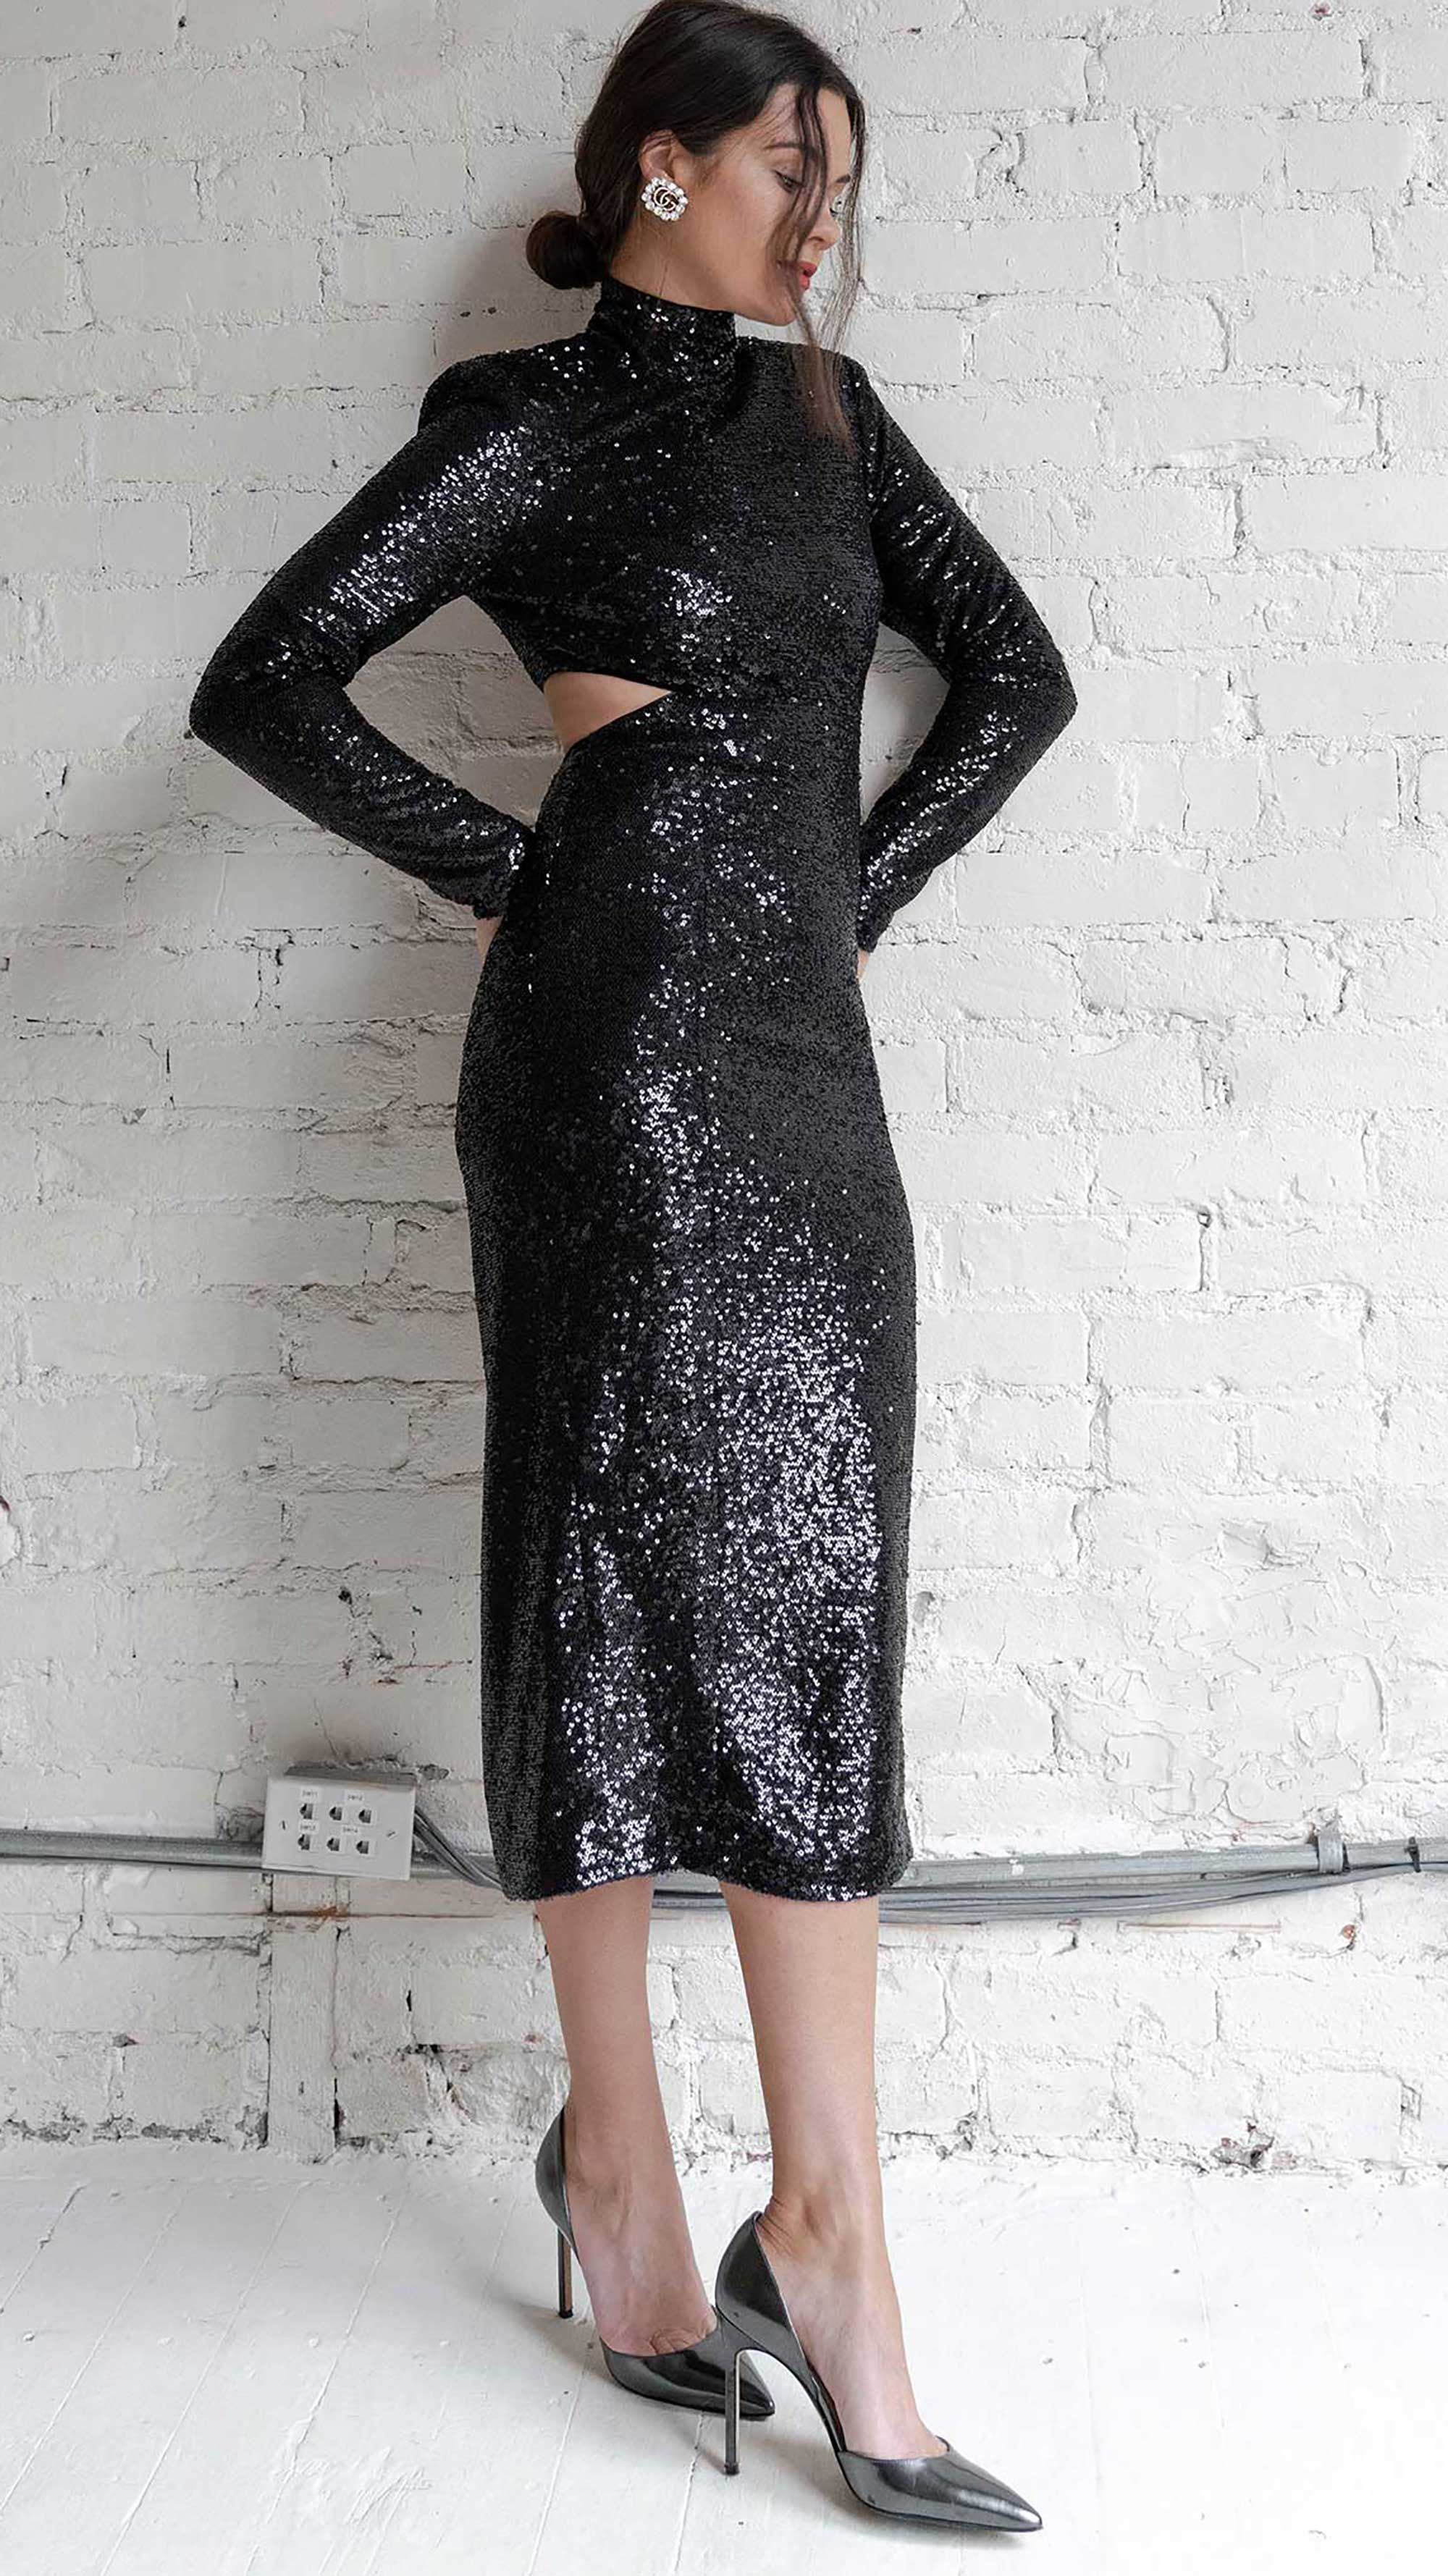 Easy New Year's Eve Outfit Idea Black Sequin Dress em 2020